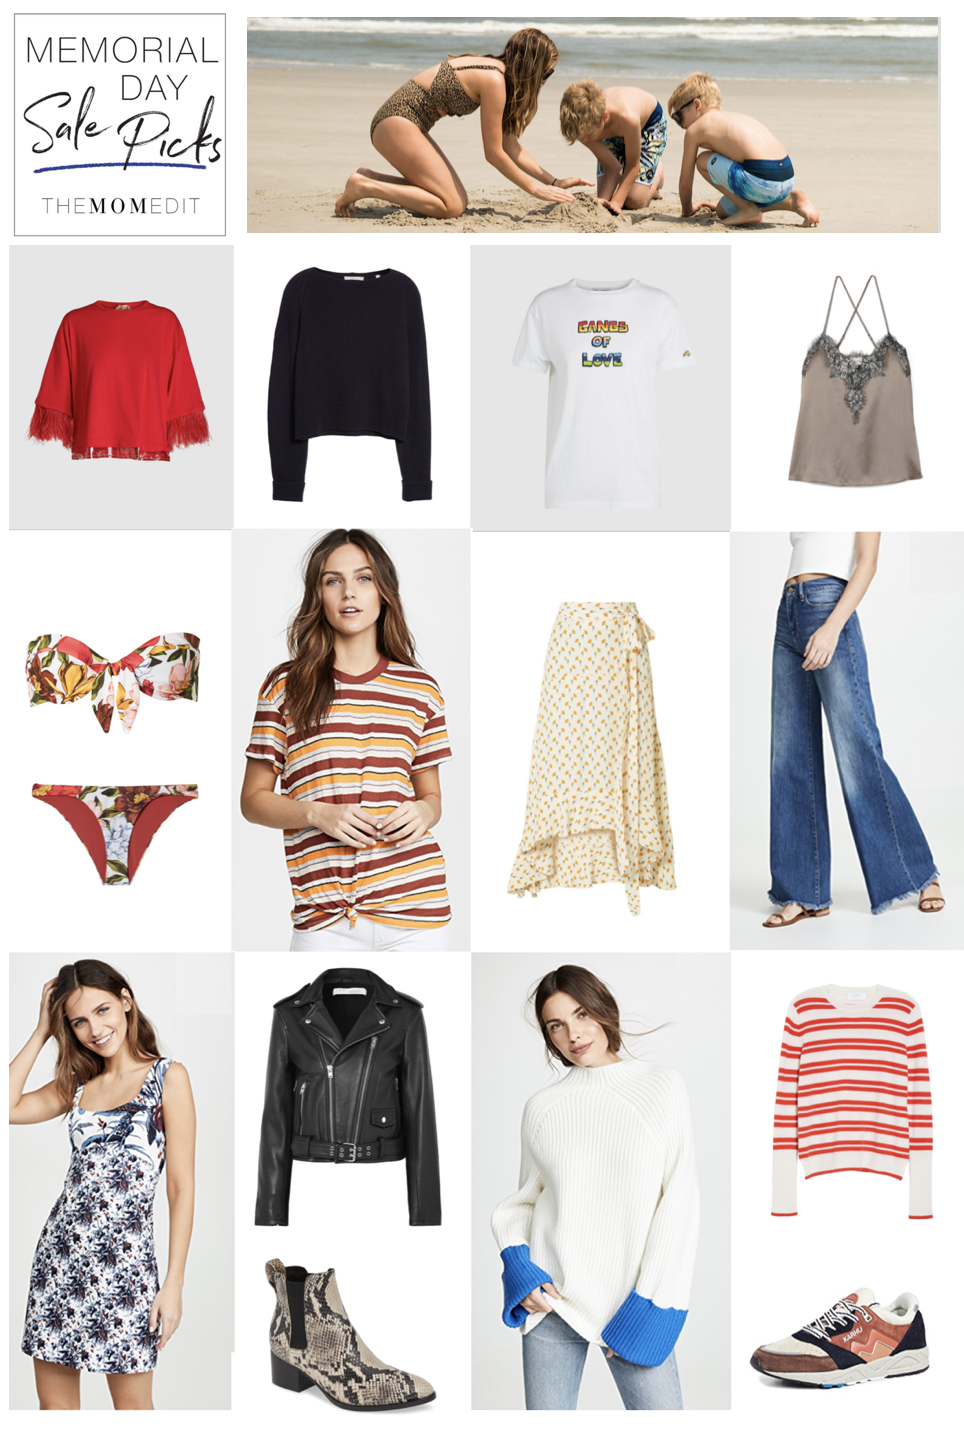 We do the research so you don't have to: same goes for Memorial Day clothing sales. My top picks —from Net-a-Porter to J.Crew to Nordstrom, right here.